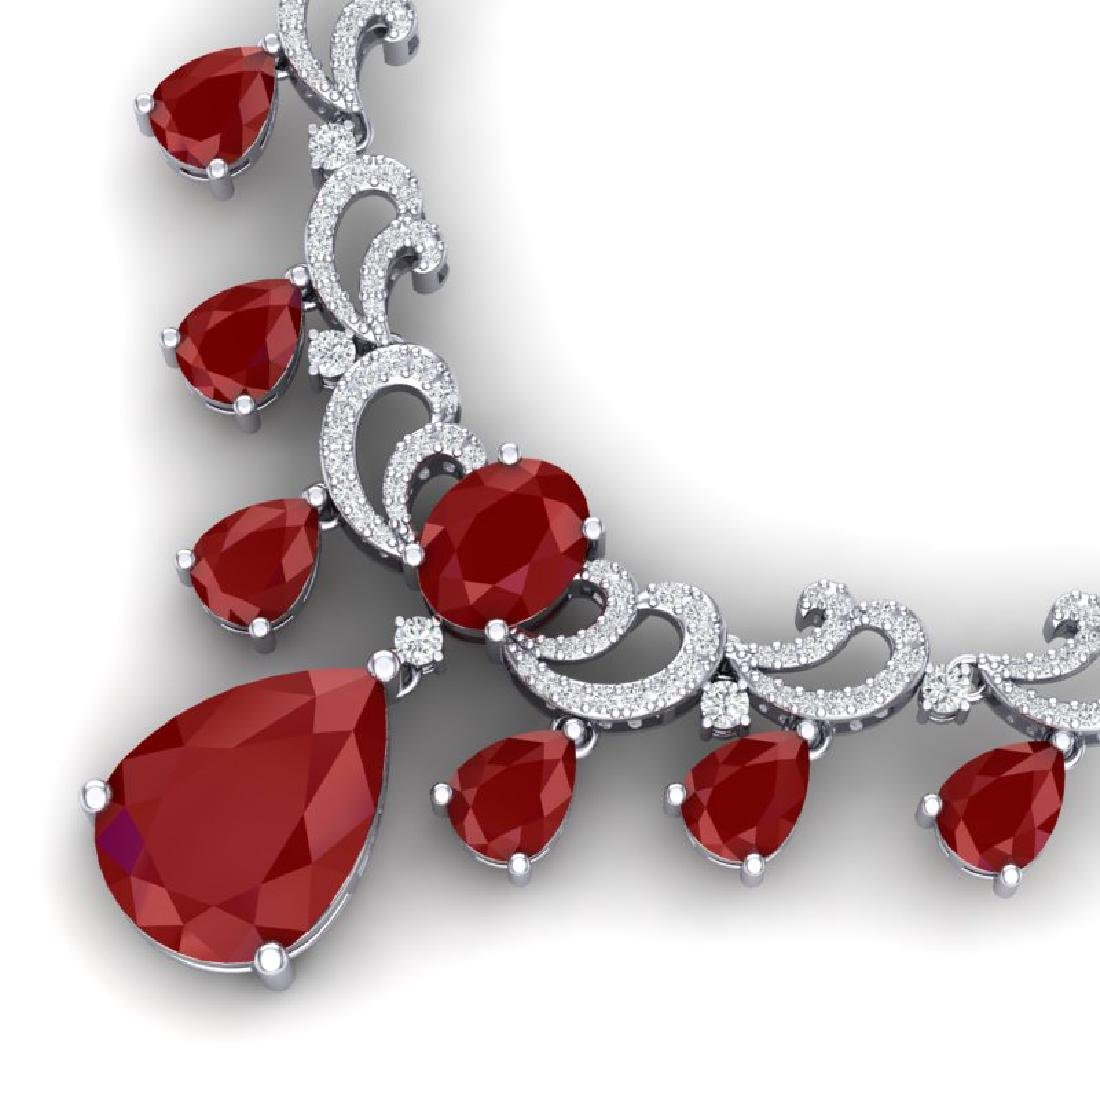 36.85 CTW Royalty Ruby & VS Diamond Necklace 18K White - 2